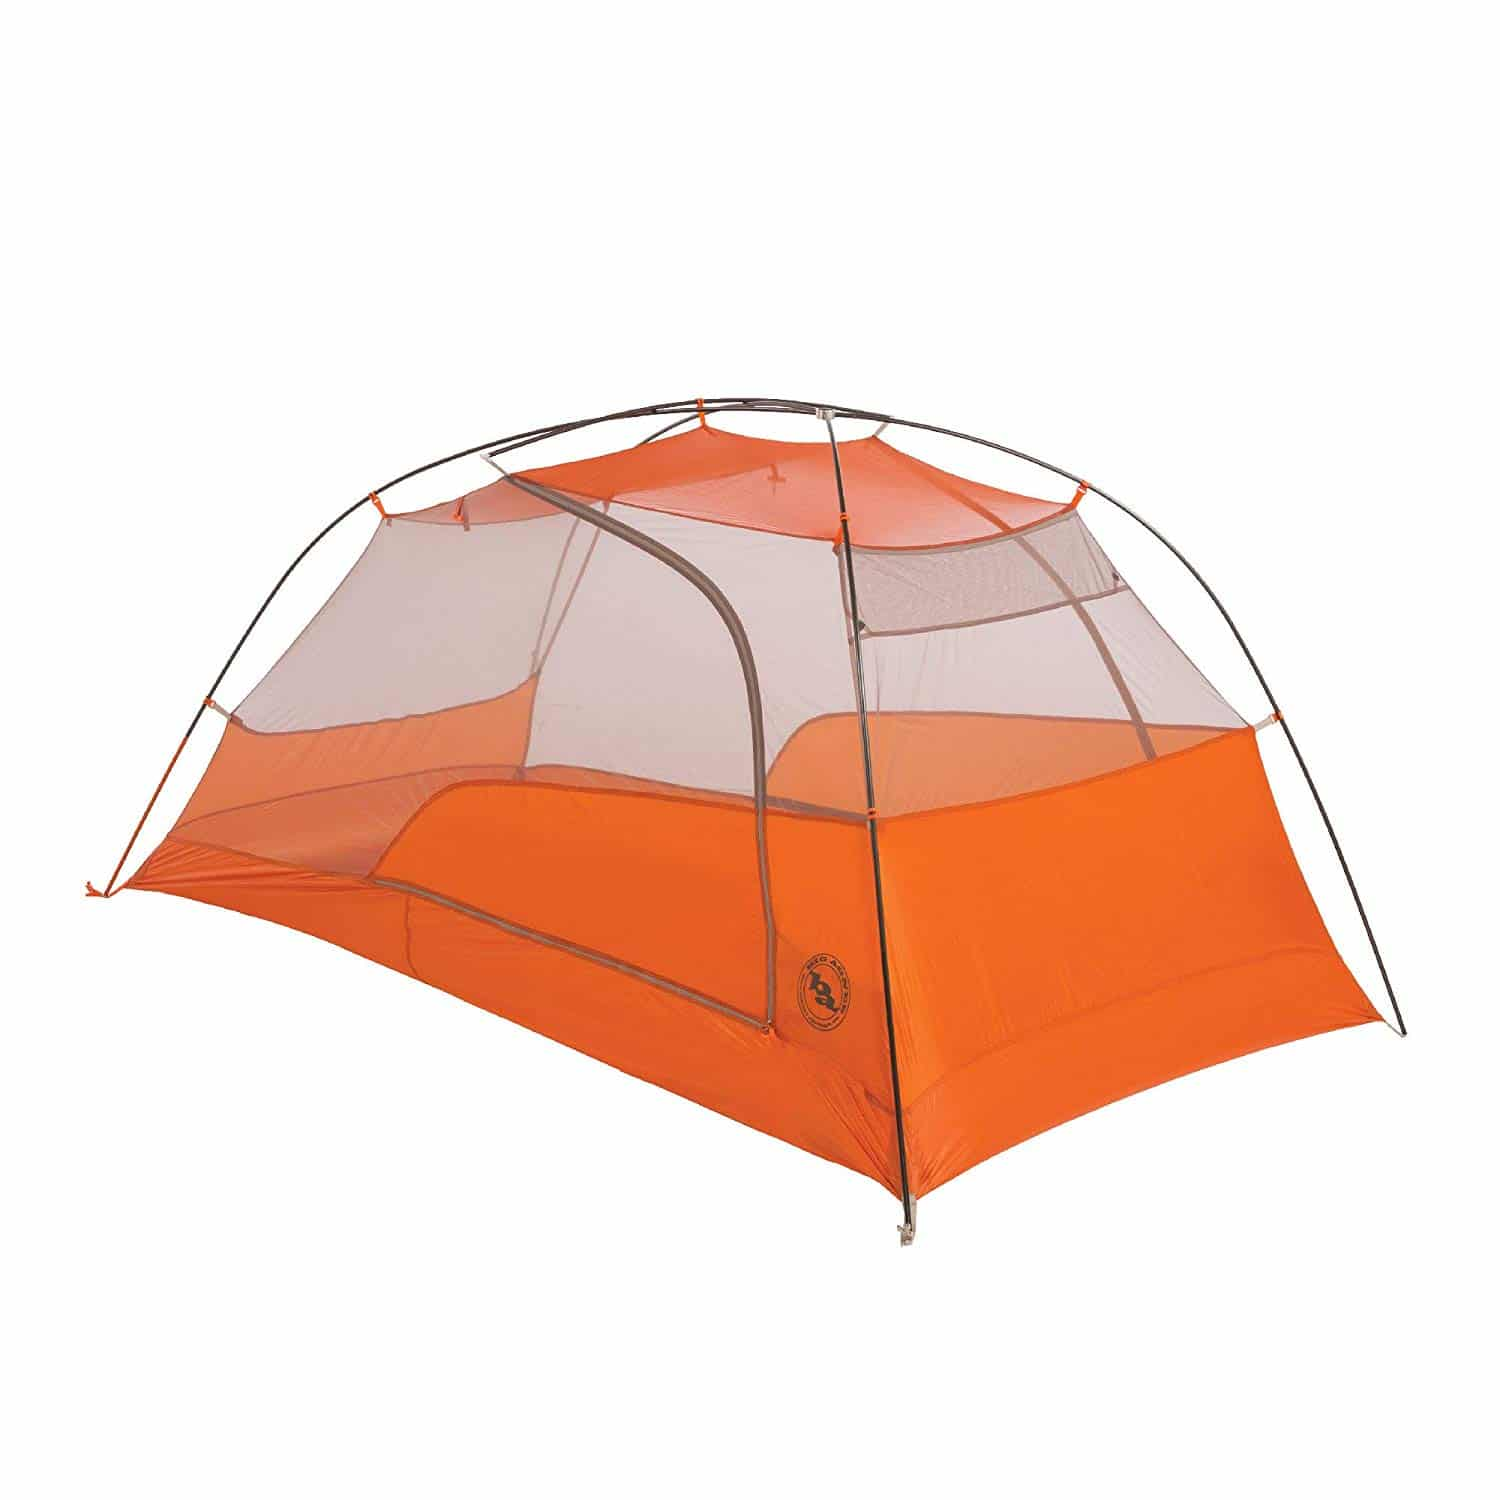 Big Agnes Copper Spur HV UL1 Backpacking Tent